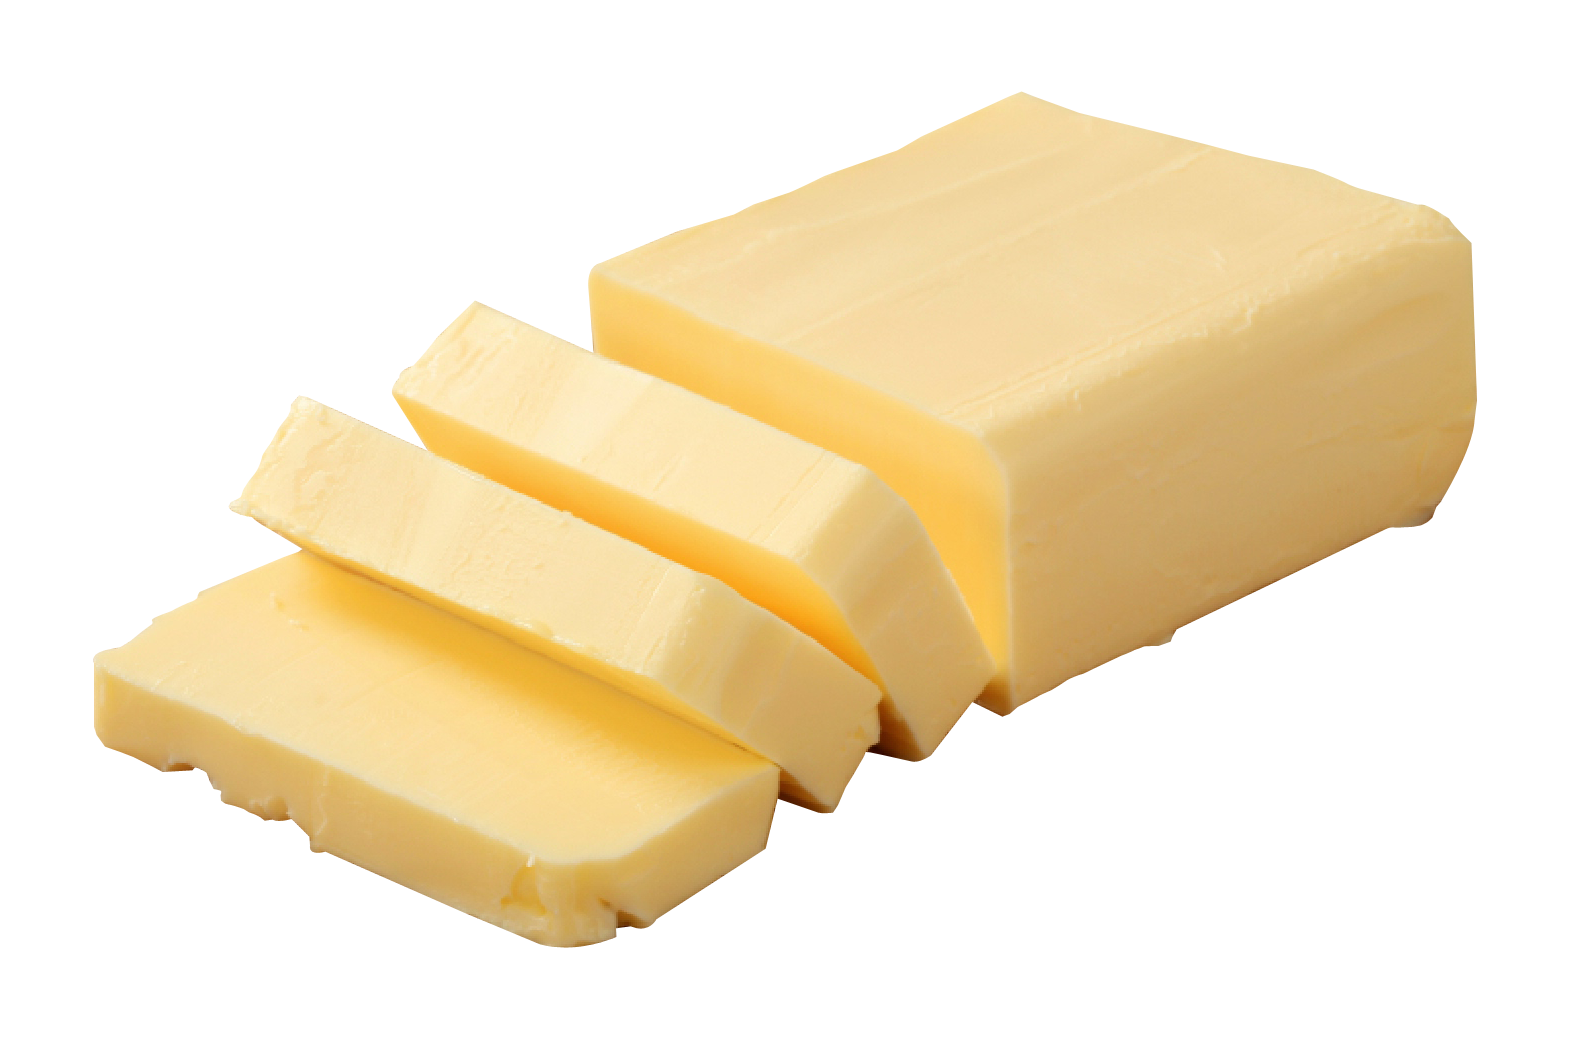 Butter clipart vector. Transparent free for download